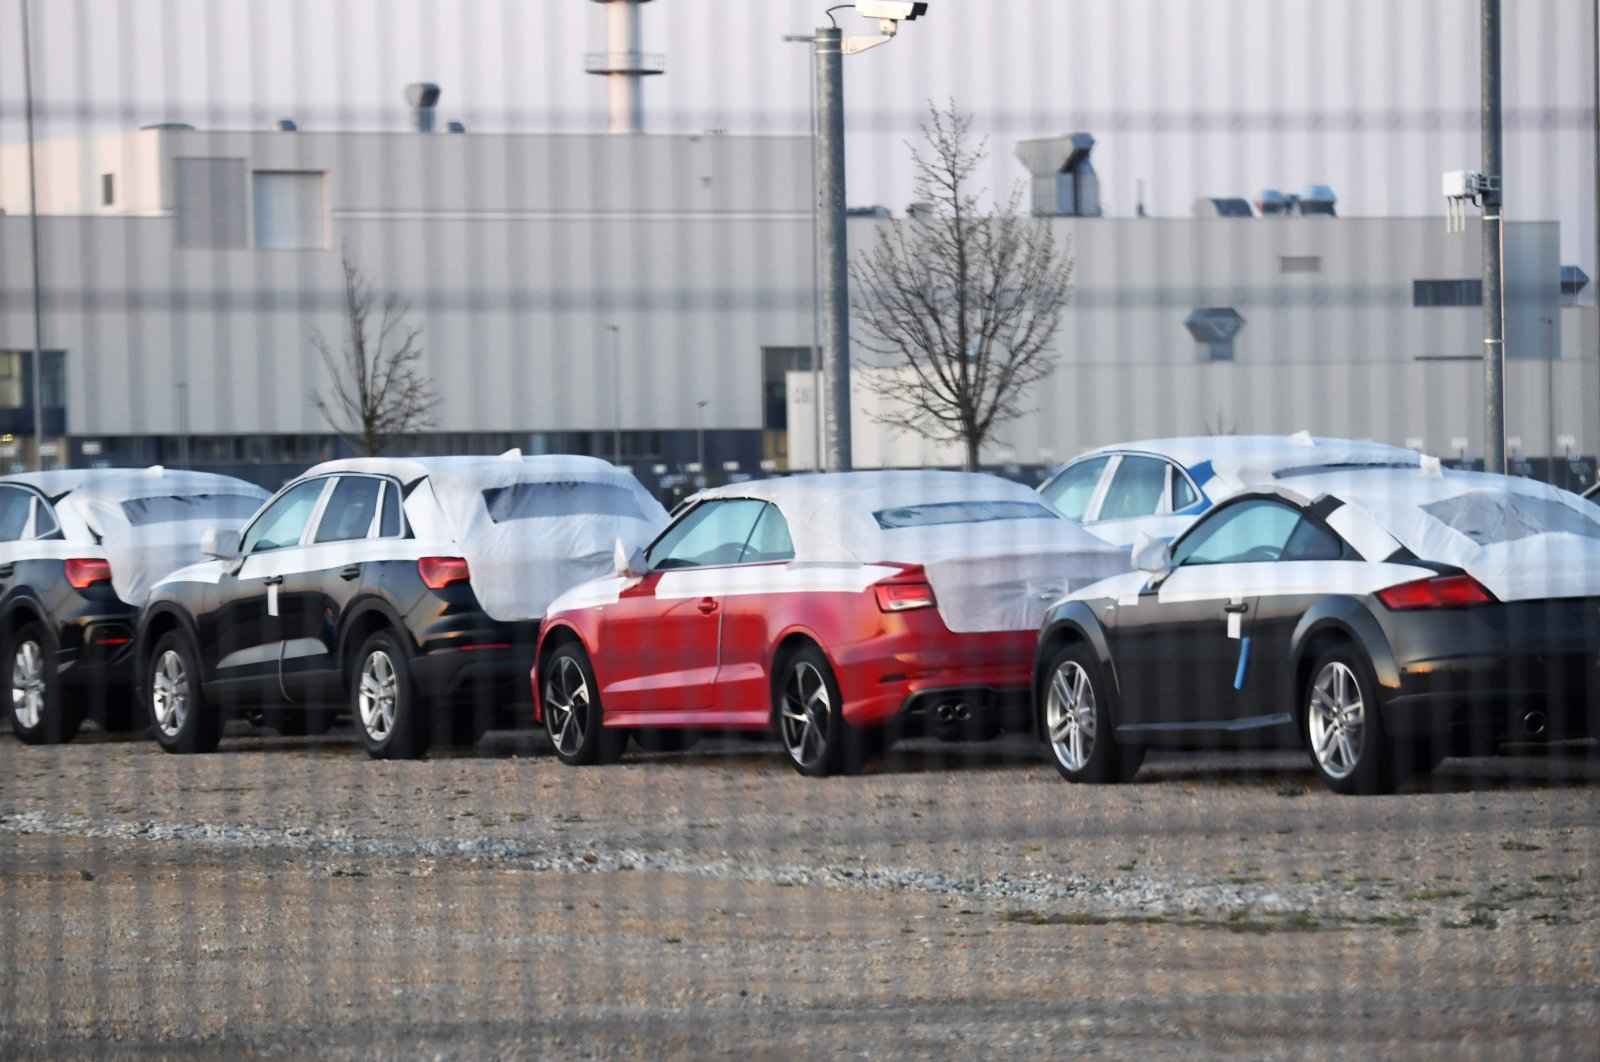 Cars lined up at the factory of German carmaker Audi in Gyor, Hungary, about 120 kilometers (75 miles) west of Budapest, following the Volkswagen Group's Audi brand restarting operations at its plant, April 15, 2020. (AFP Photo)